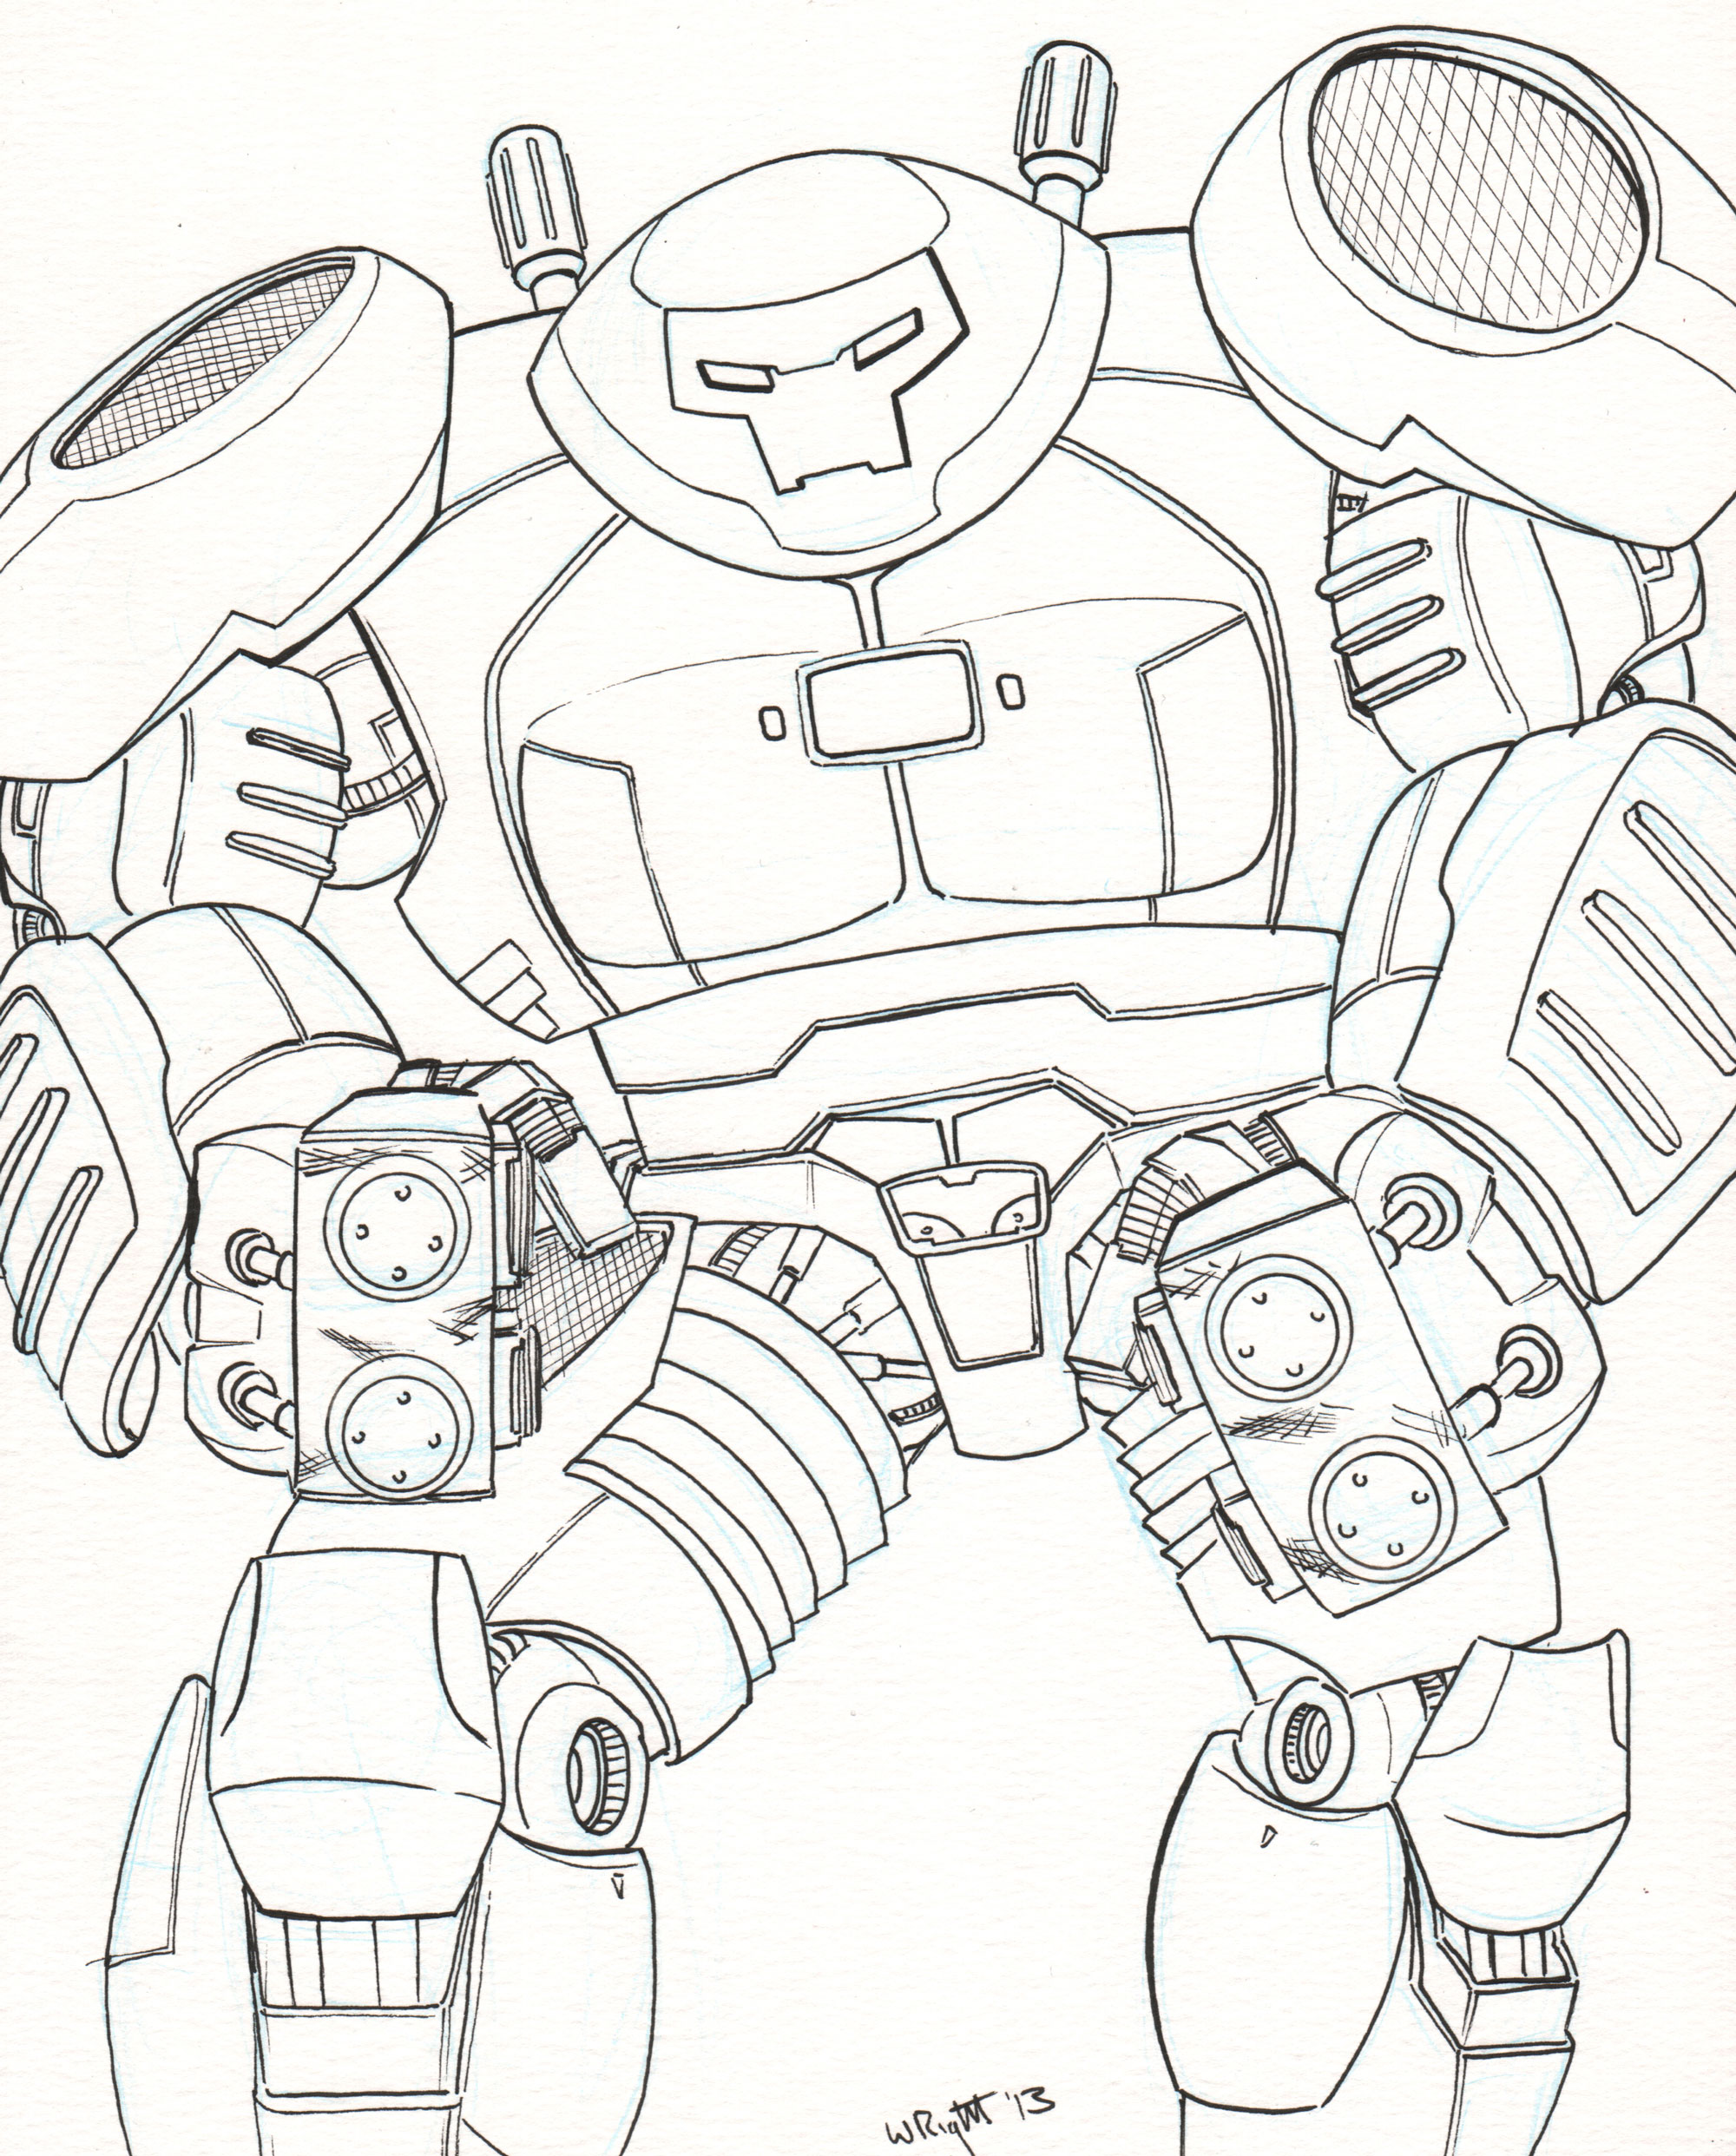 2000x2484 Iron Man Hulkbuster Vs Hulk Coloring Pages All About